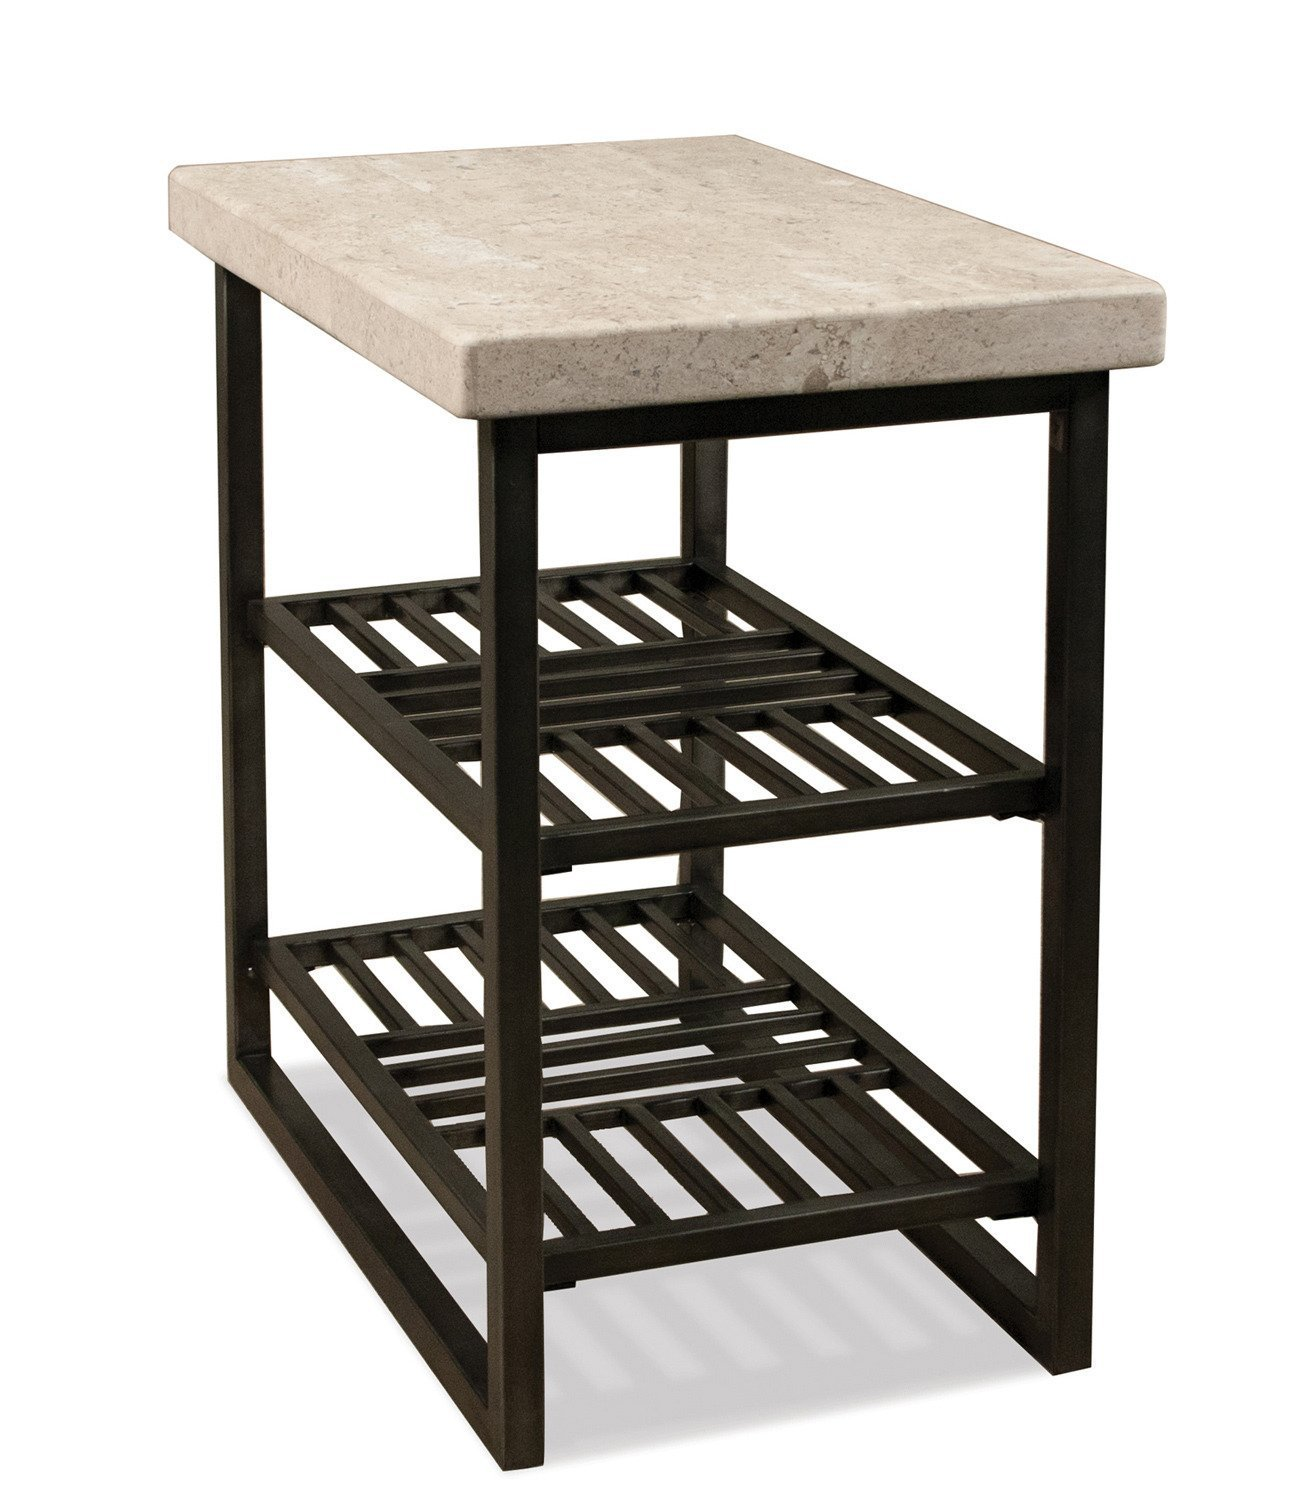 end table end tables and made public at may 18 2017 11 12 37 am by